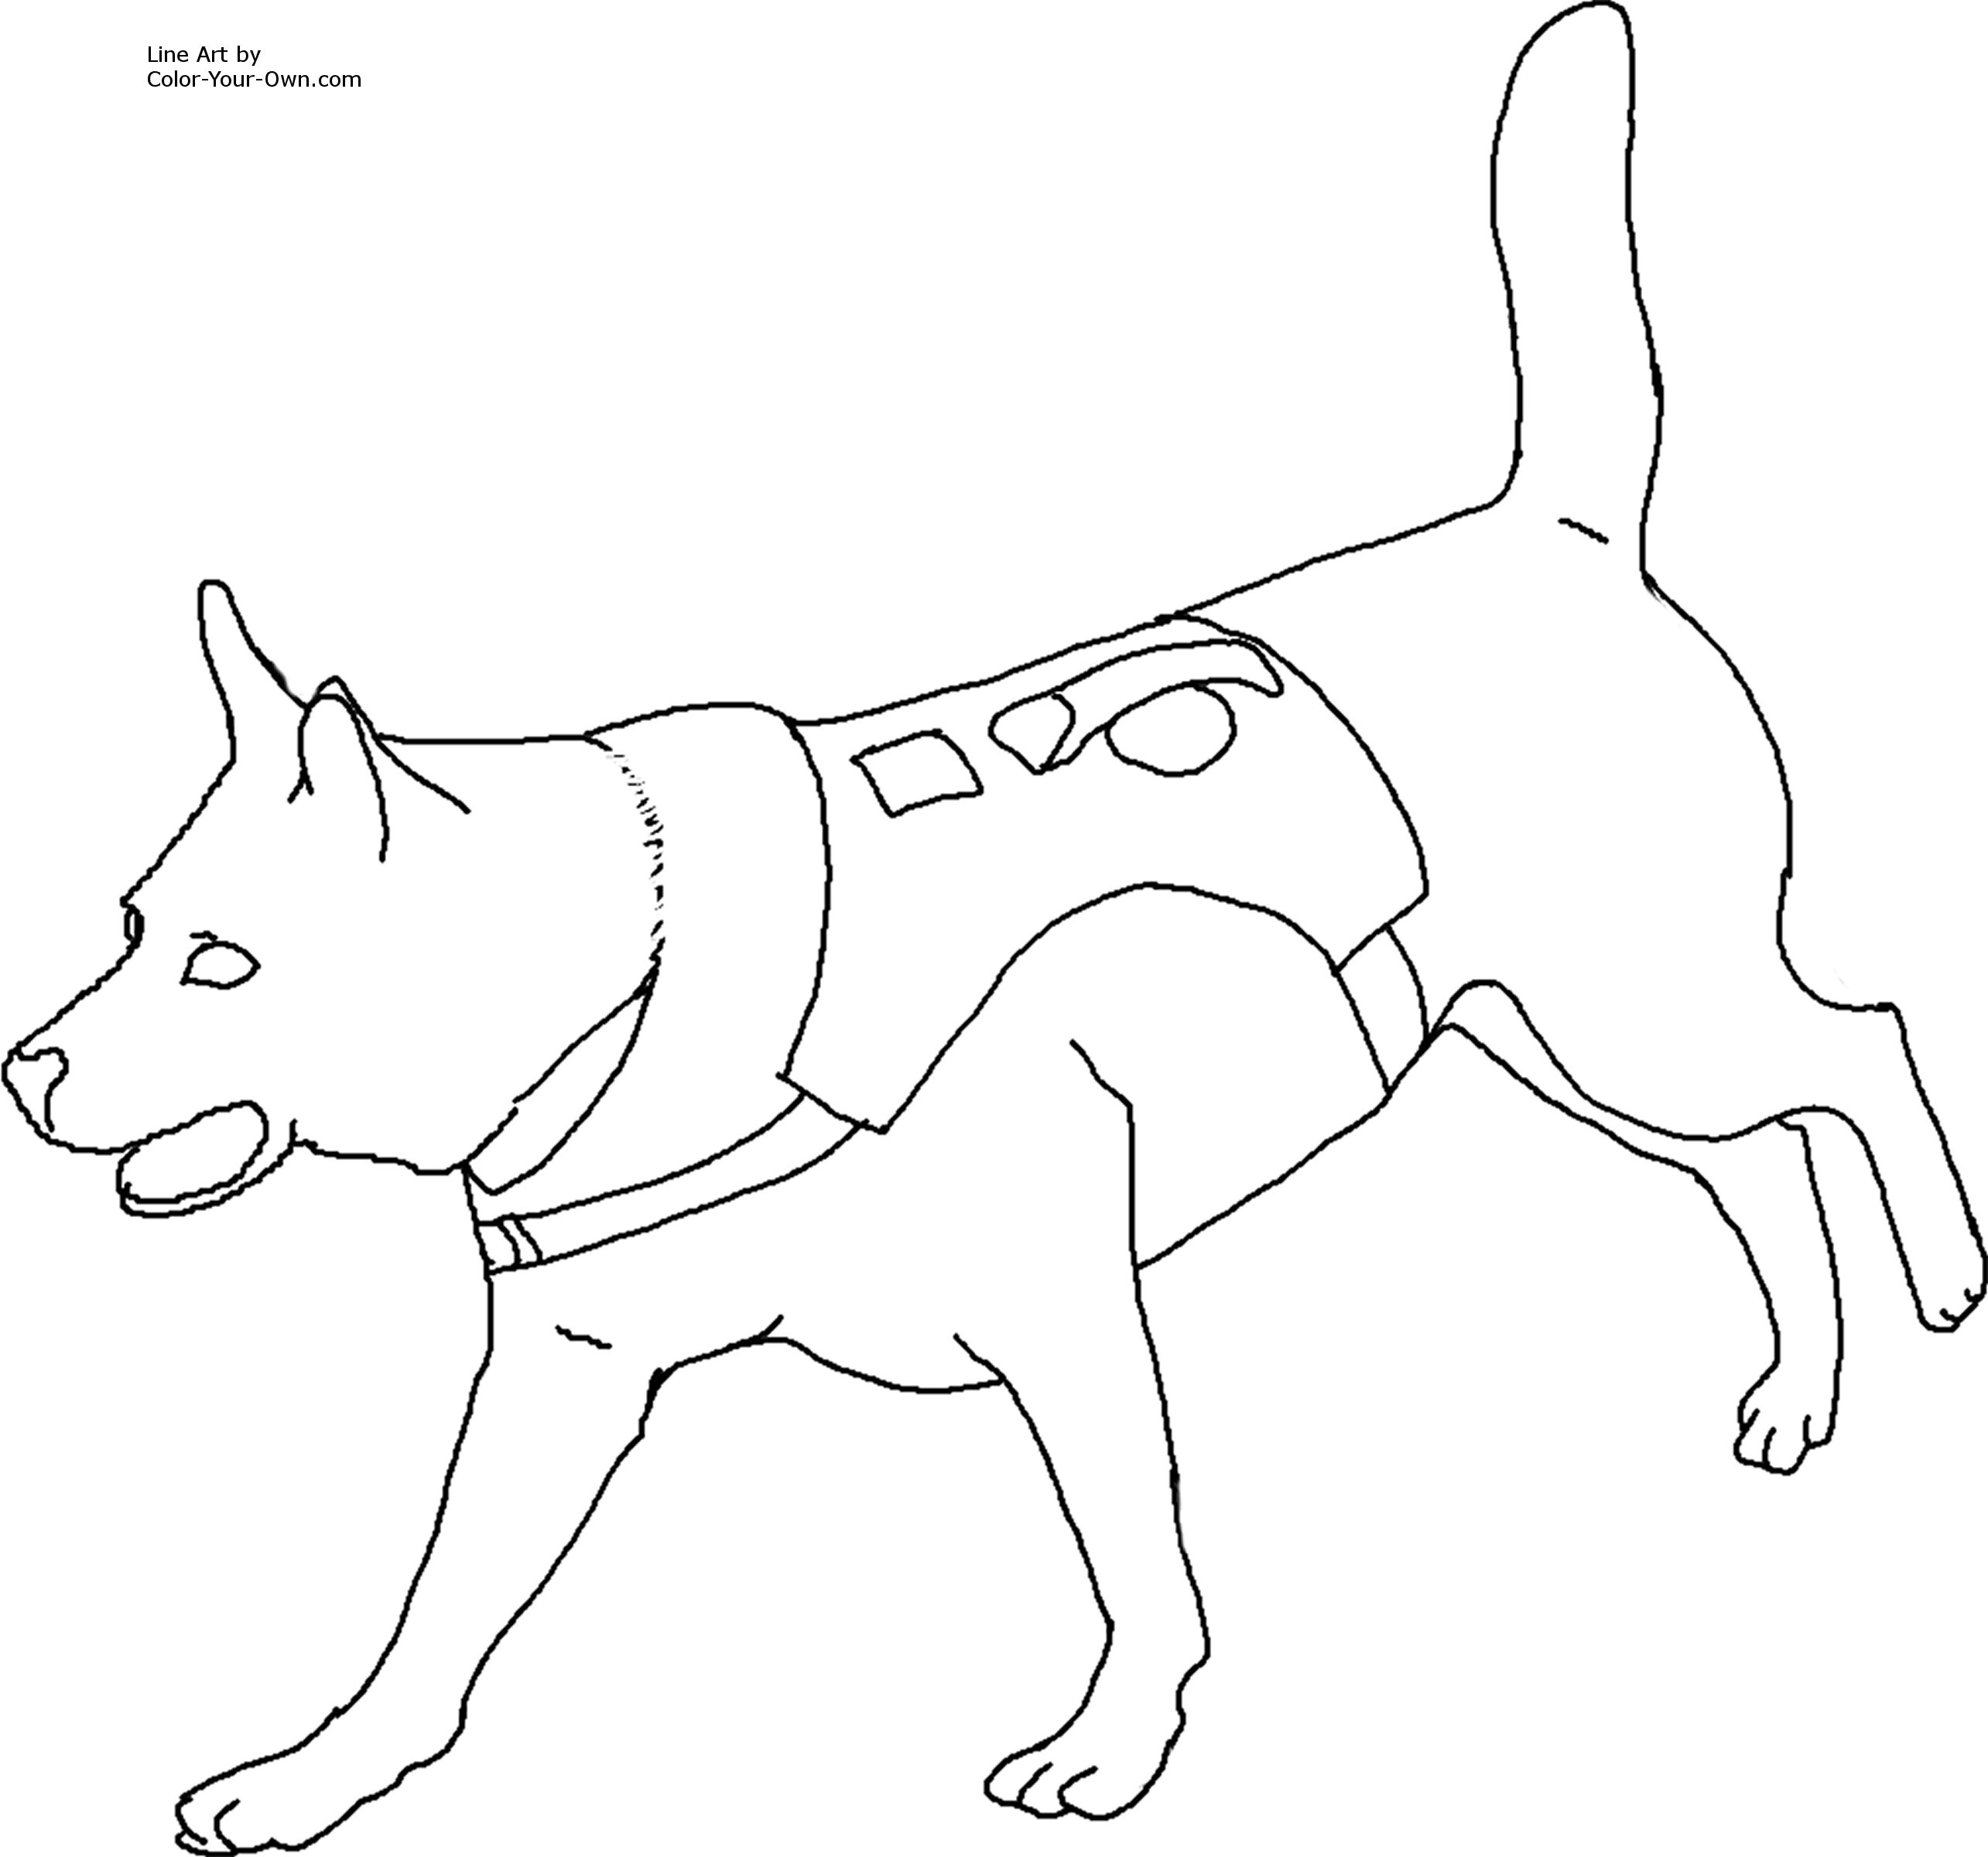 Pitbull clipart coloring page Coloring printable shepherd Pages Clip